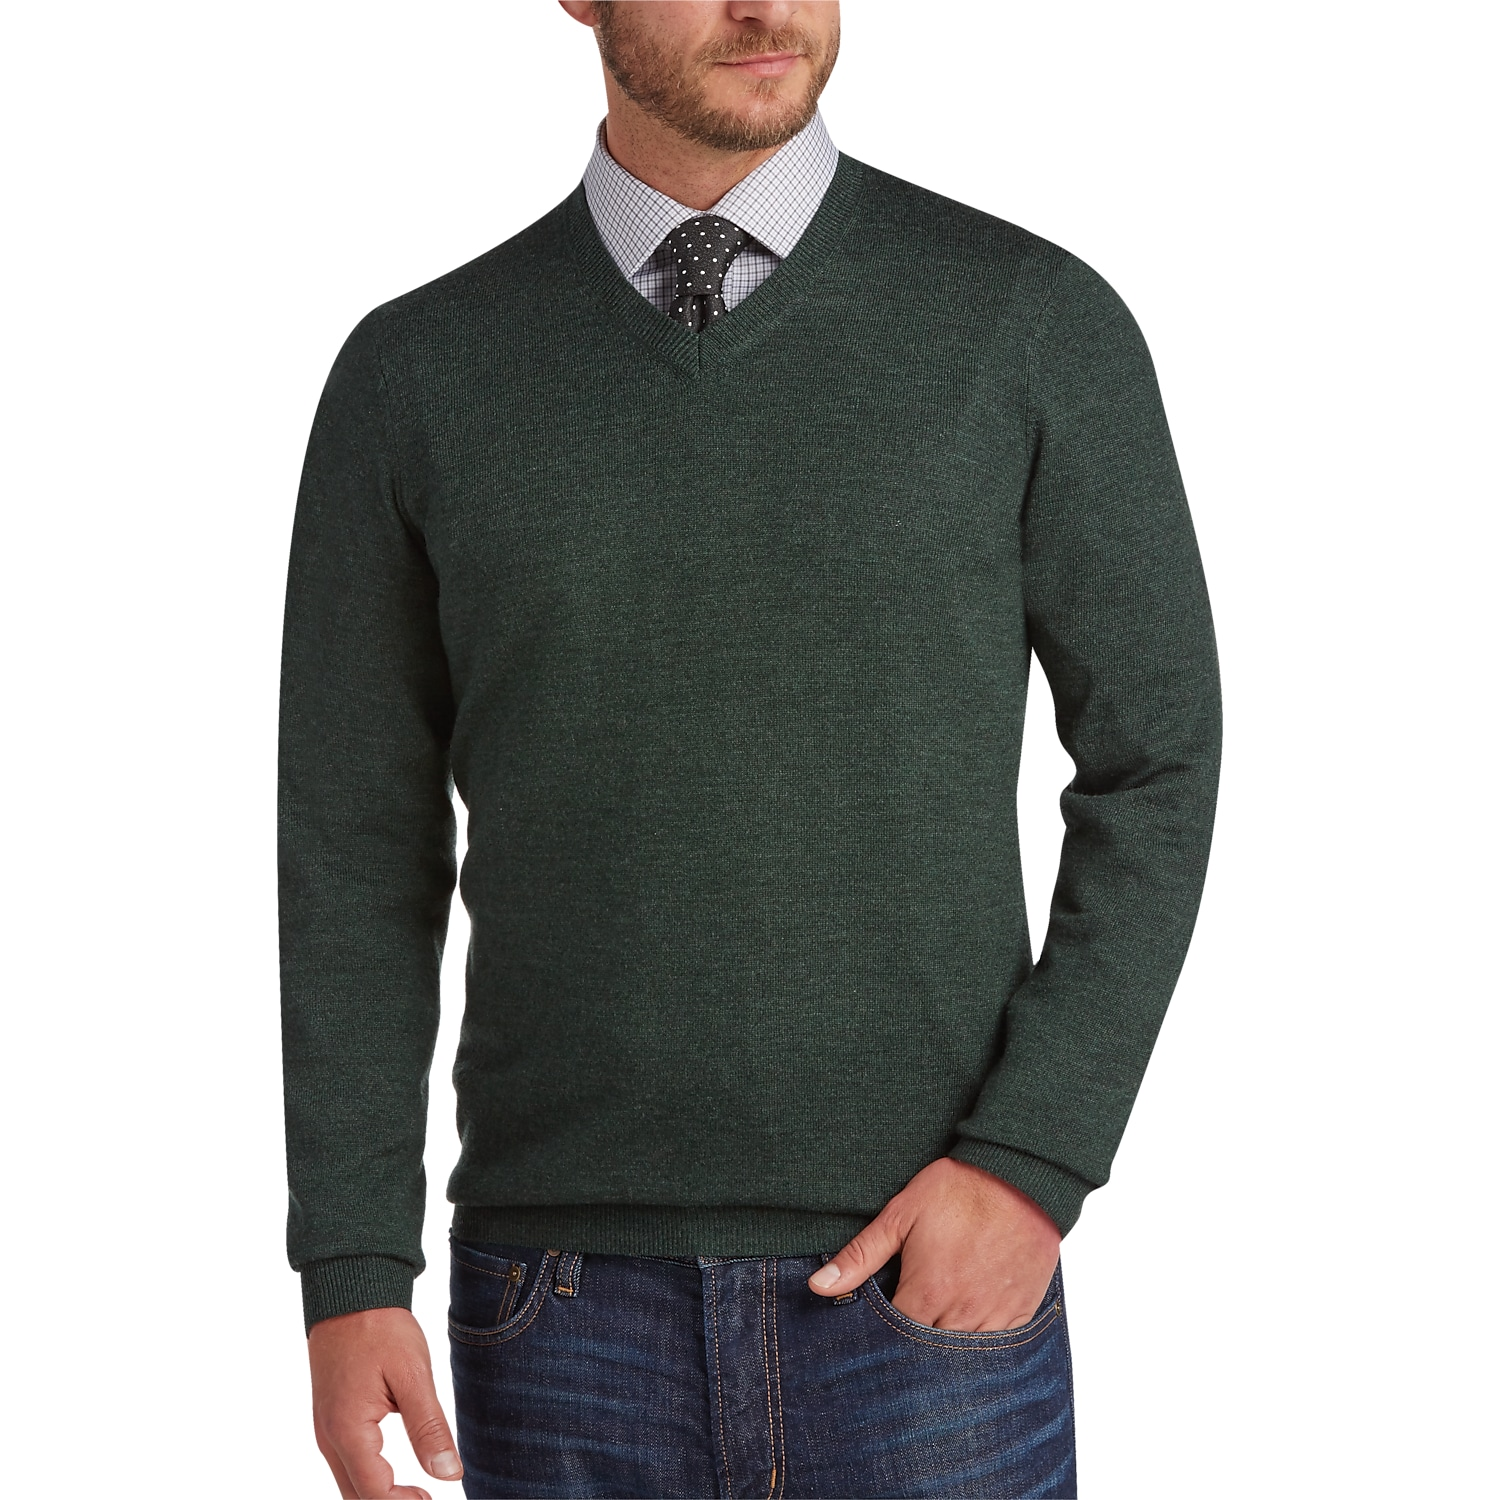 Sweaters - Men's Clothing | Men's Wearhouse